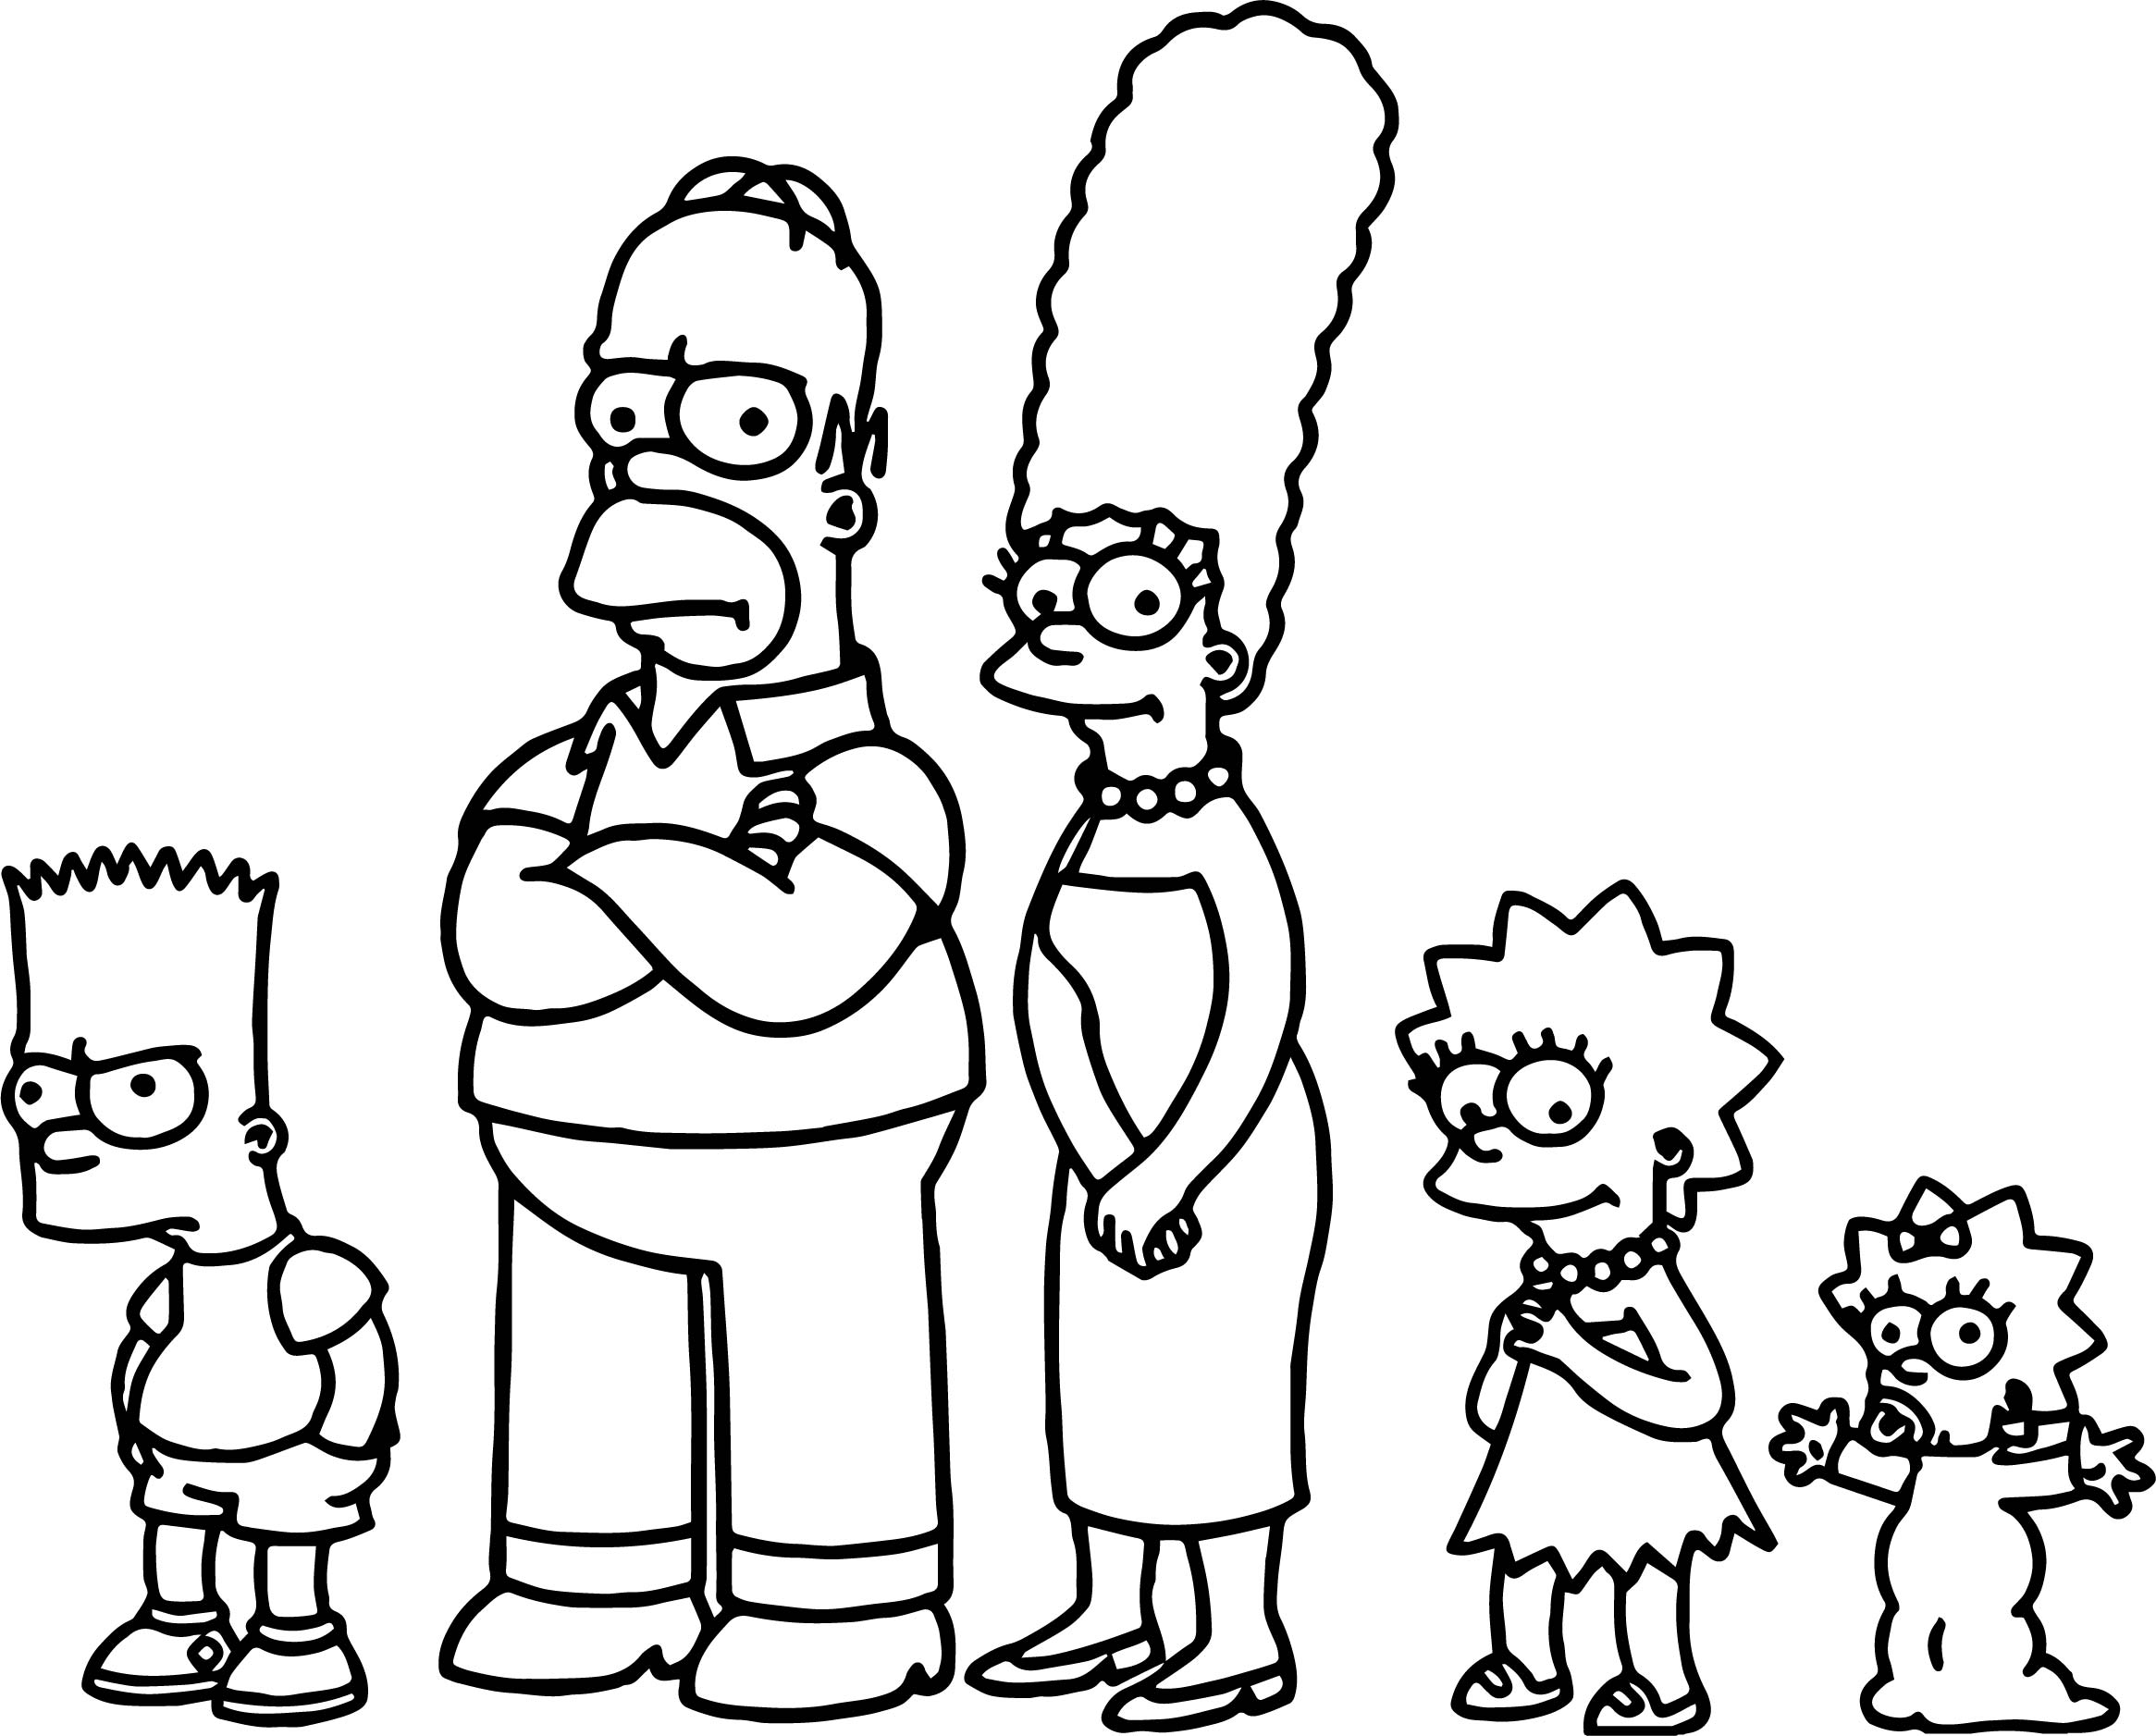 Uncategorized Simpsons Coloring watch the simpsons still really hates fox news coloring page page